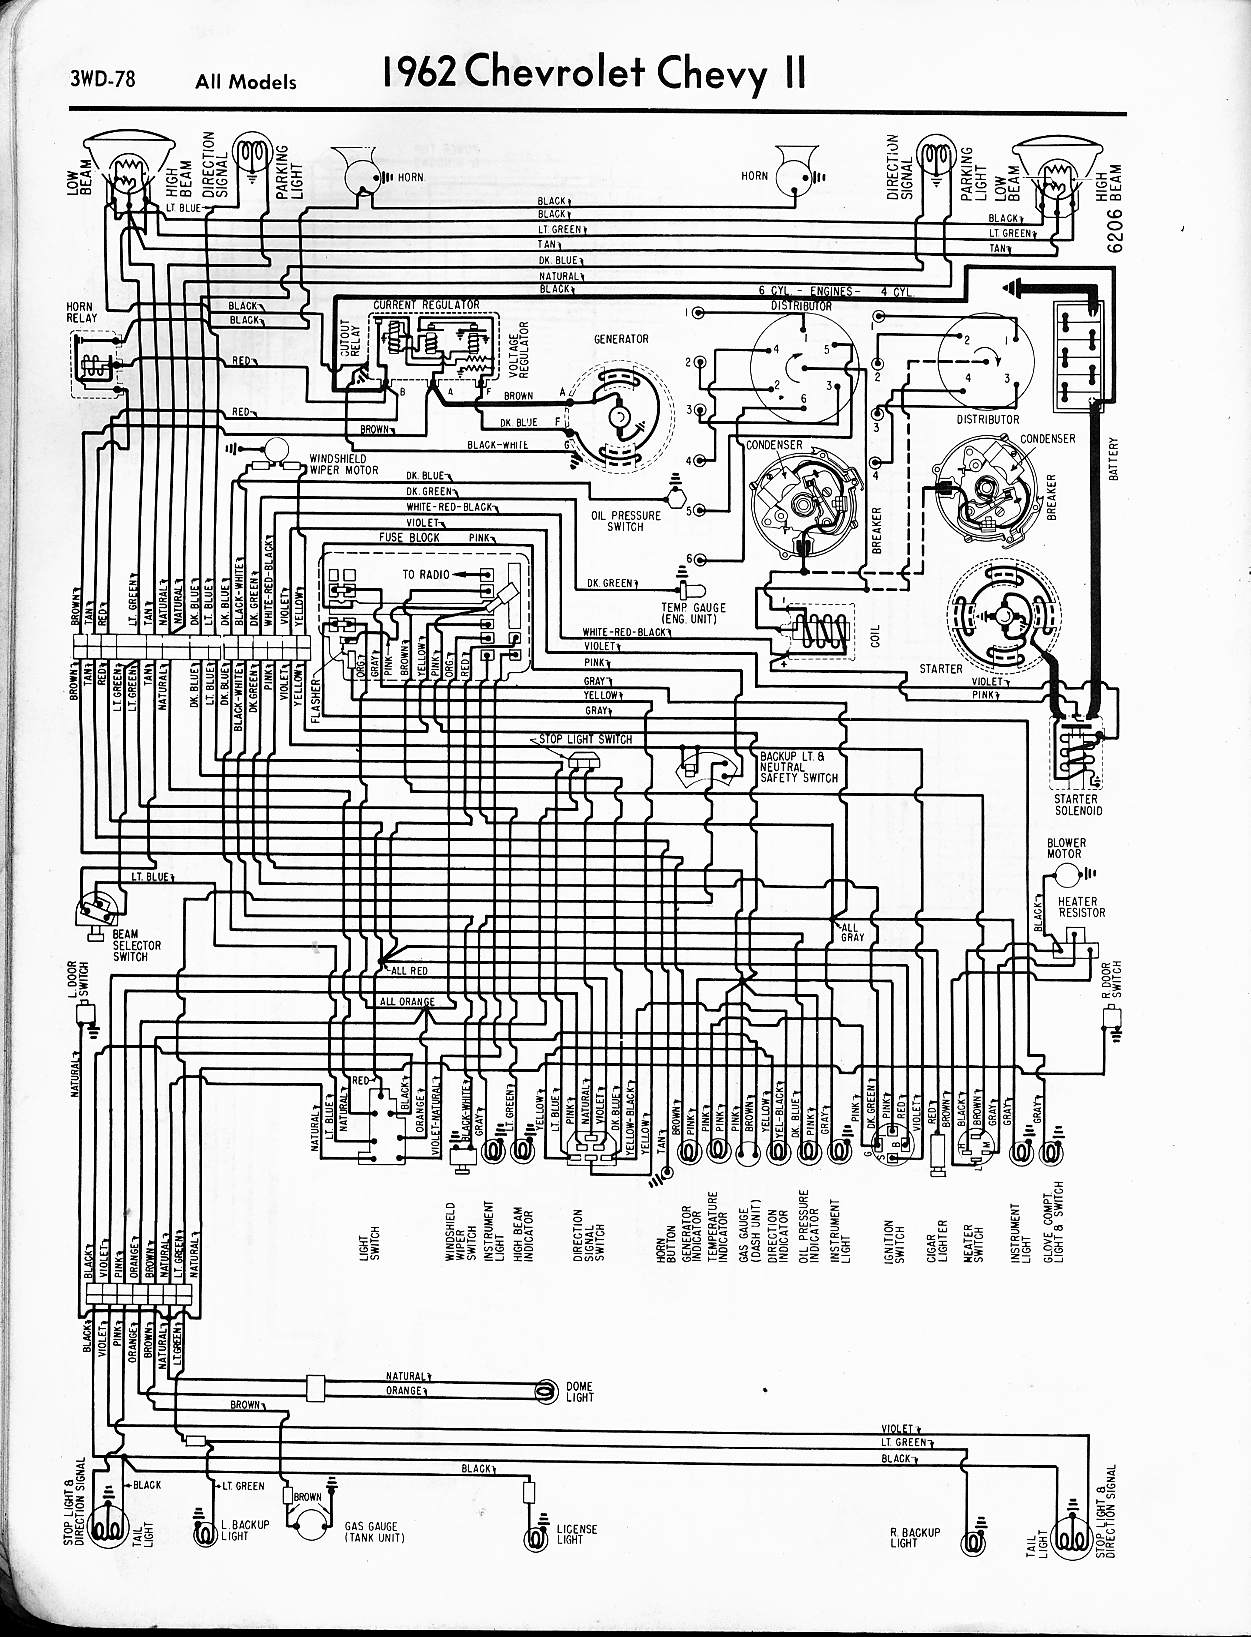 MWireChev62_3WD 078 1963 c10 pickup wiring diagram pdf chevy wiring diagrams \u2022 free 67 Chevy 2 Nova at mifinder.co